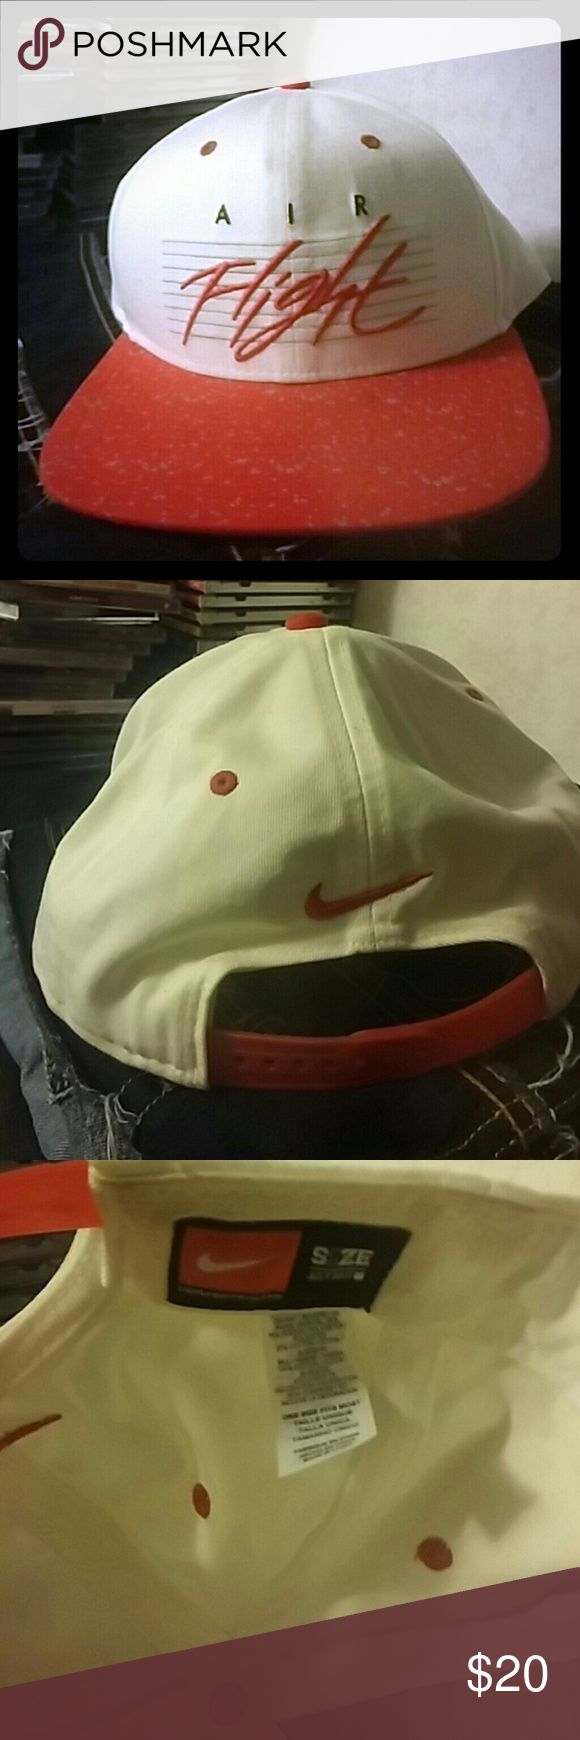 Nike Air Flight One Size Fits Cap One size fits most. Has a mothy smell to it. Nike Accessories Hats